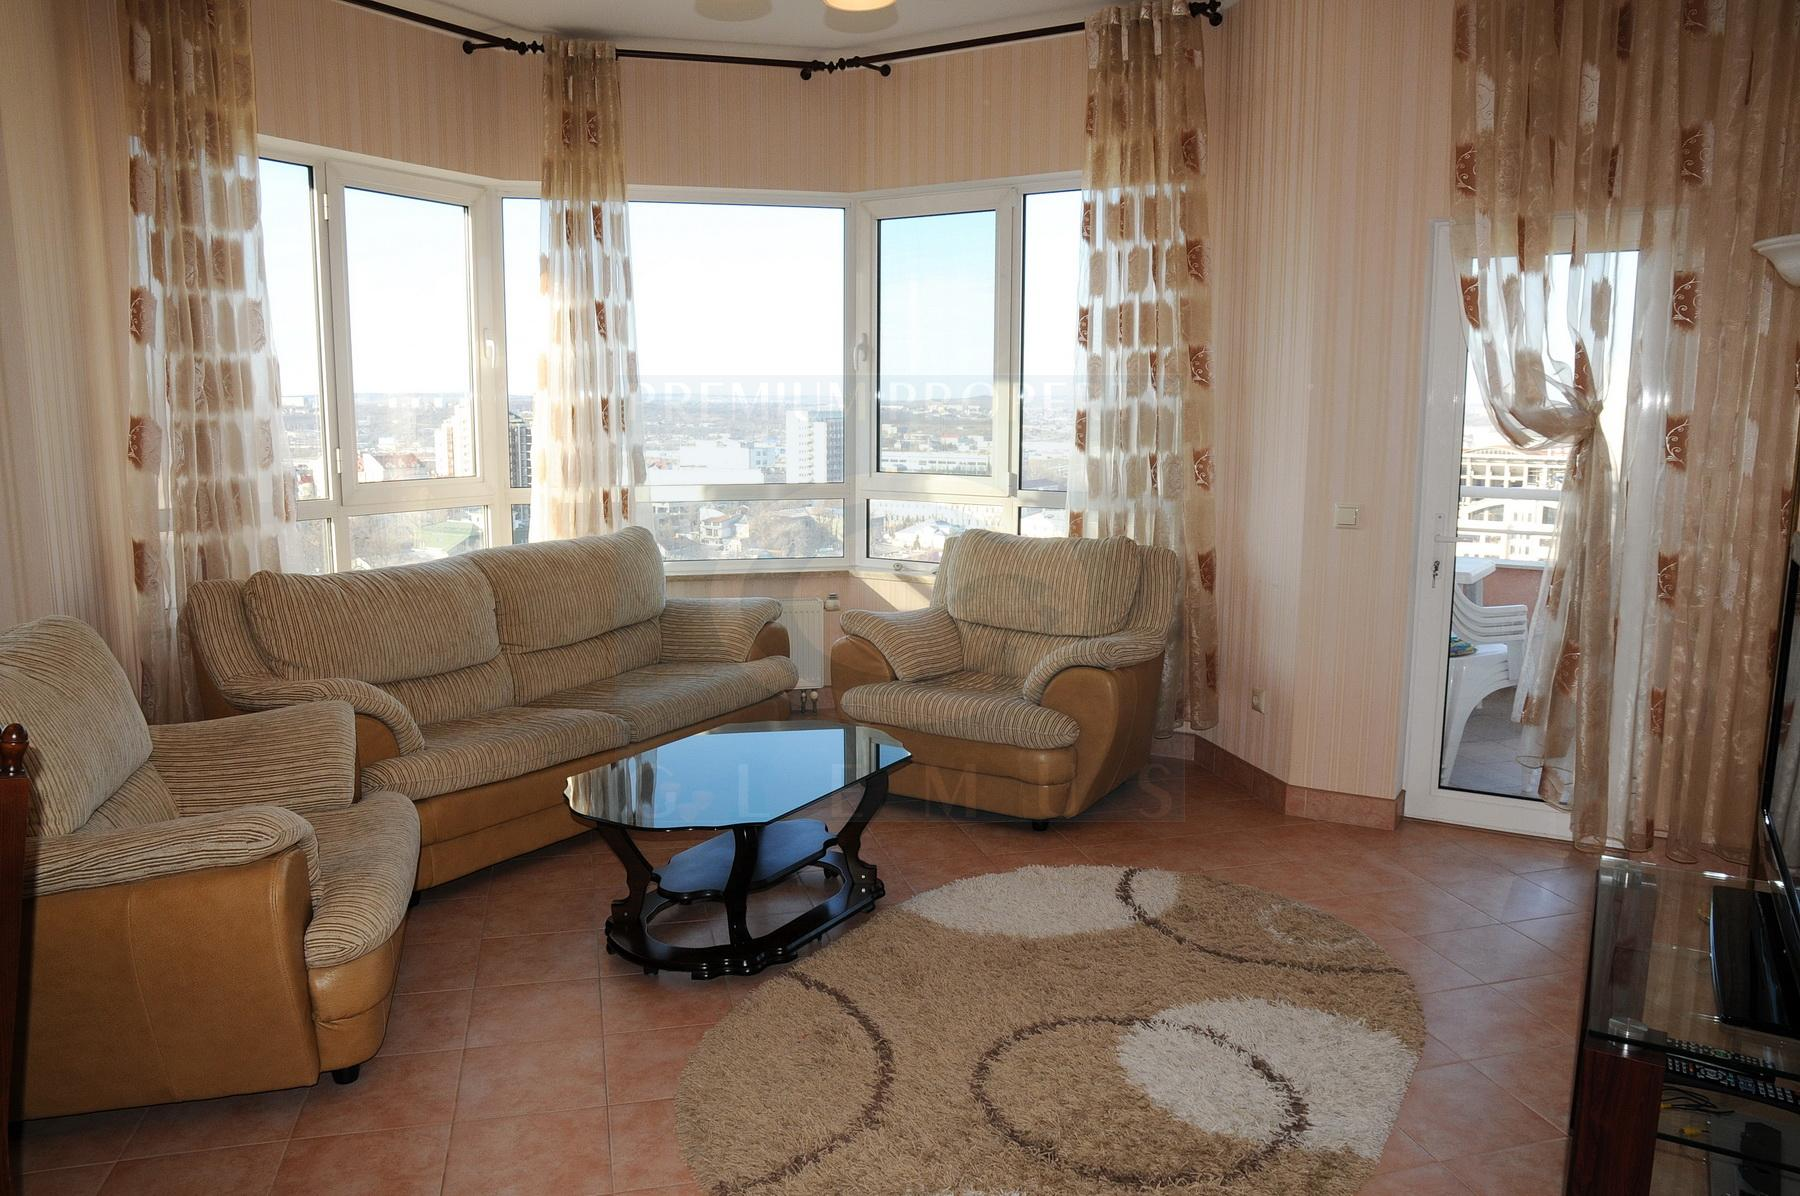 Two-bedroom apartment on the high floor in Crown Plaza building.